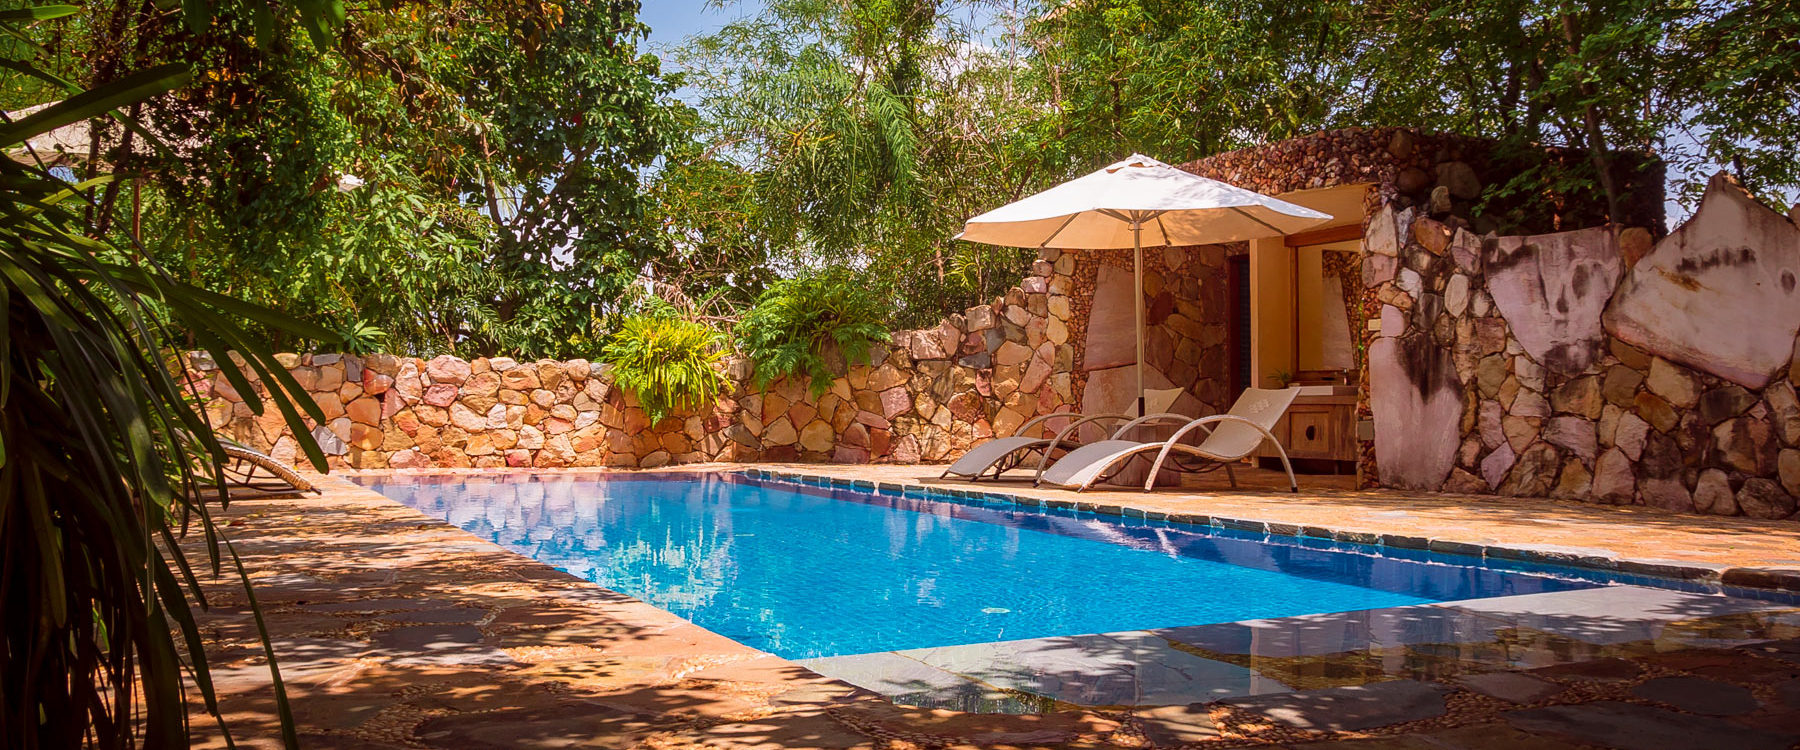 Pool Villa, high standing accommodation with private swimming pool and a garden designed with mineral stones and tropical plants in Veranda Natural Resort, Kep - Cambodia.